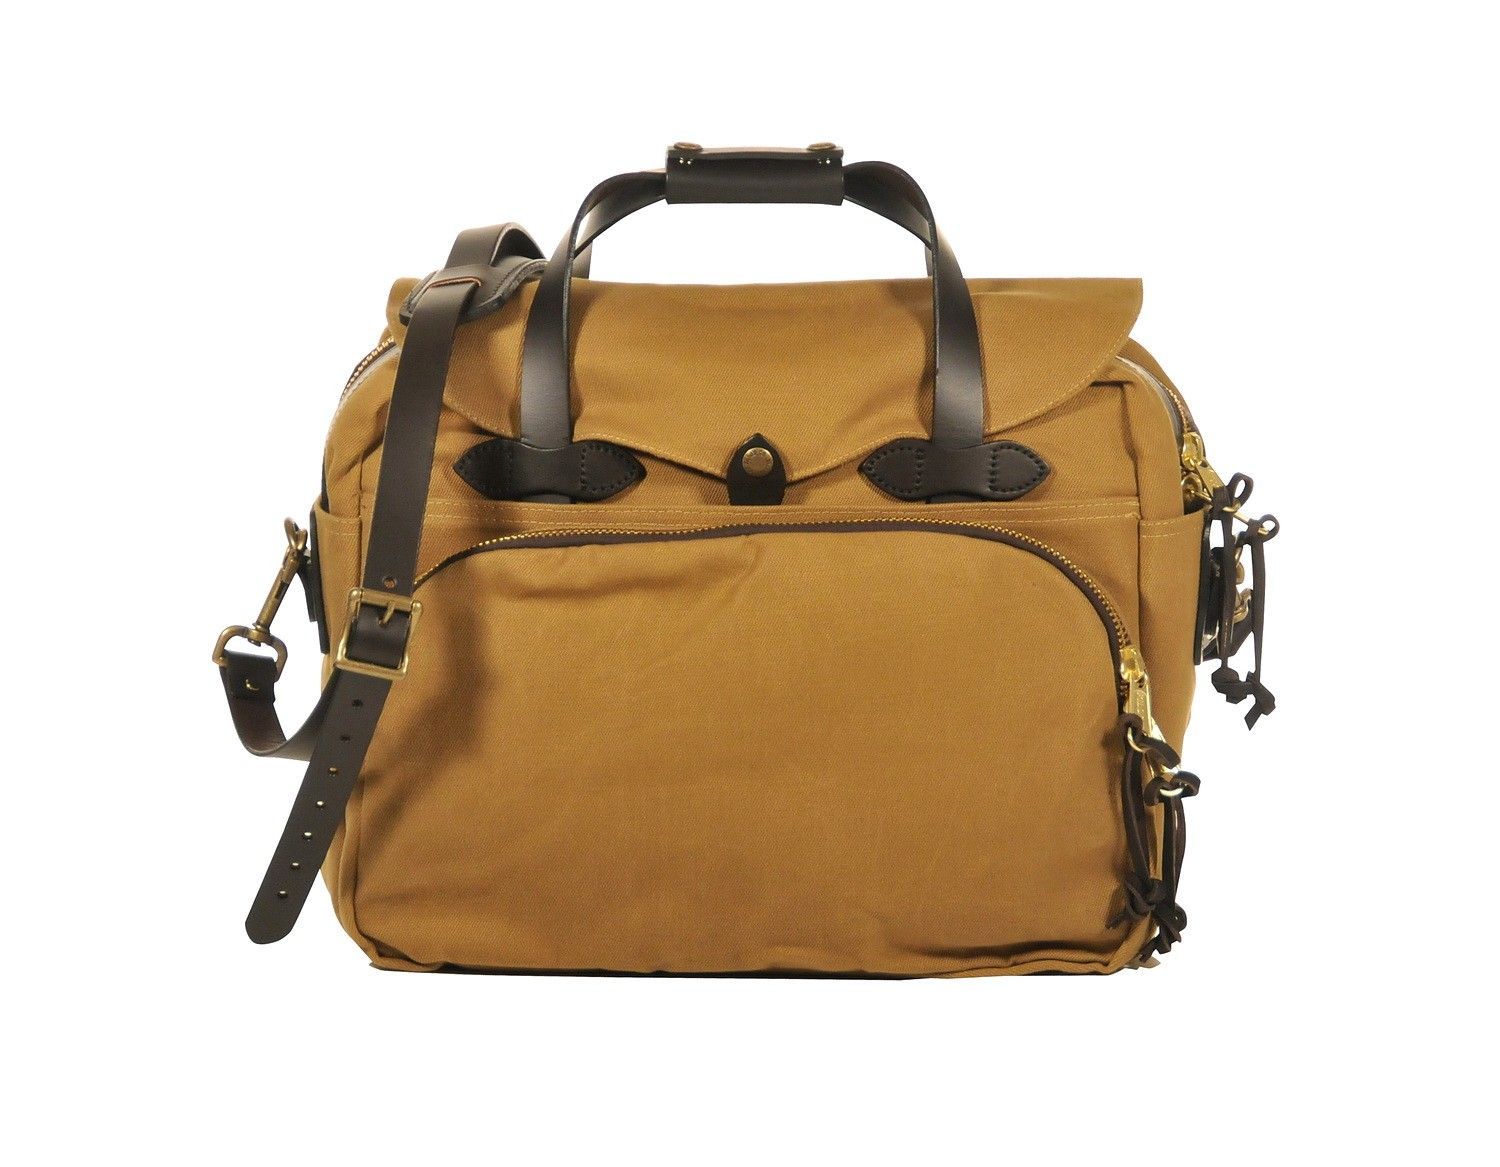 FILSON - Tasche - Padded Computer Bag Tan